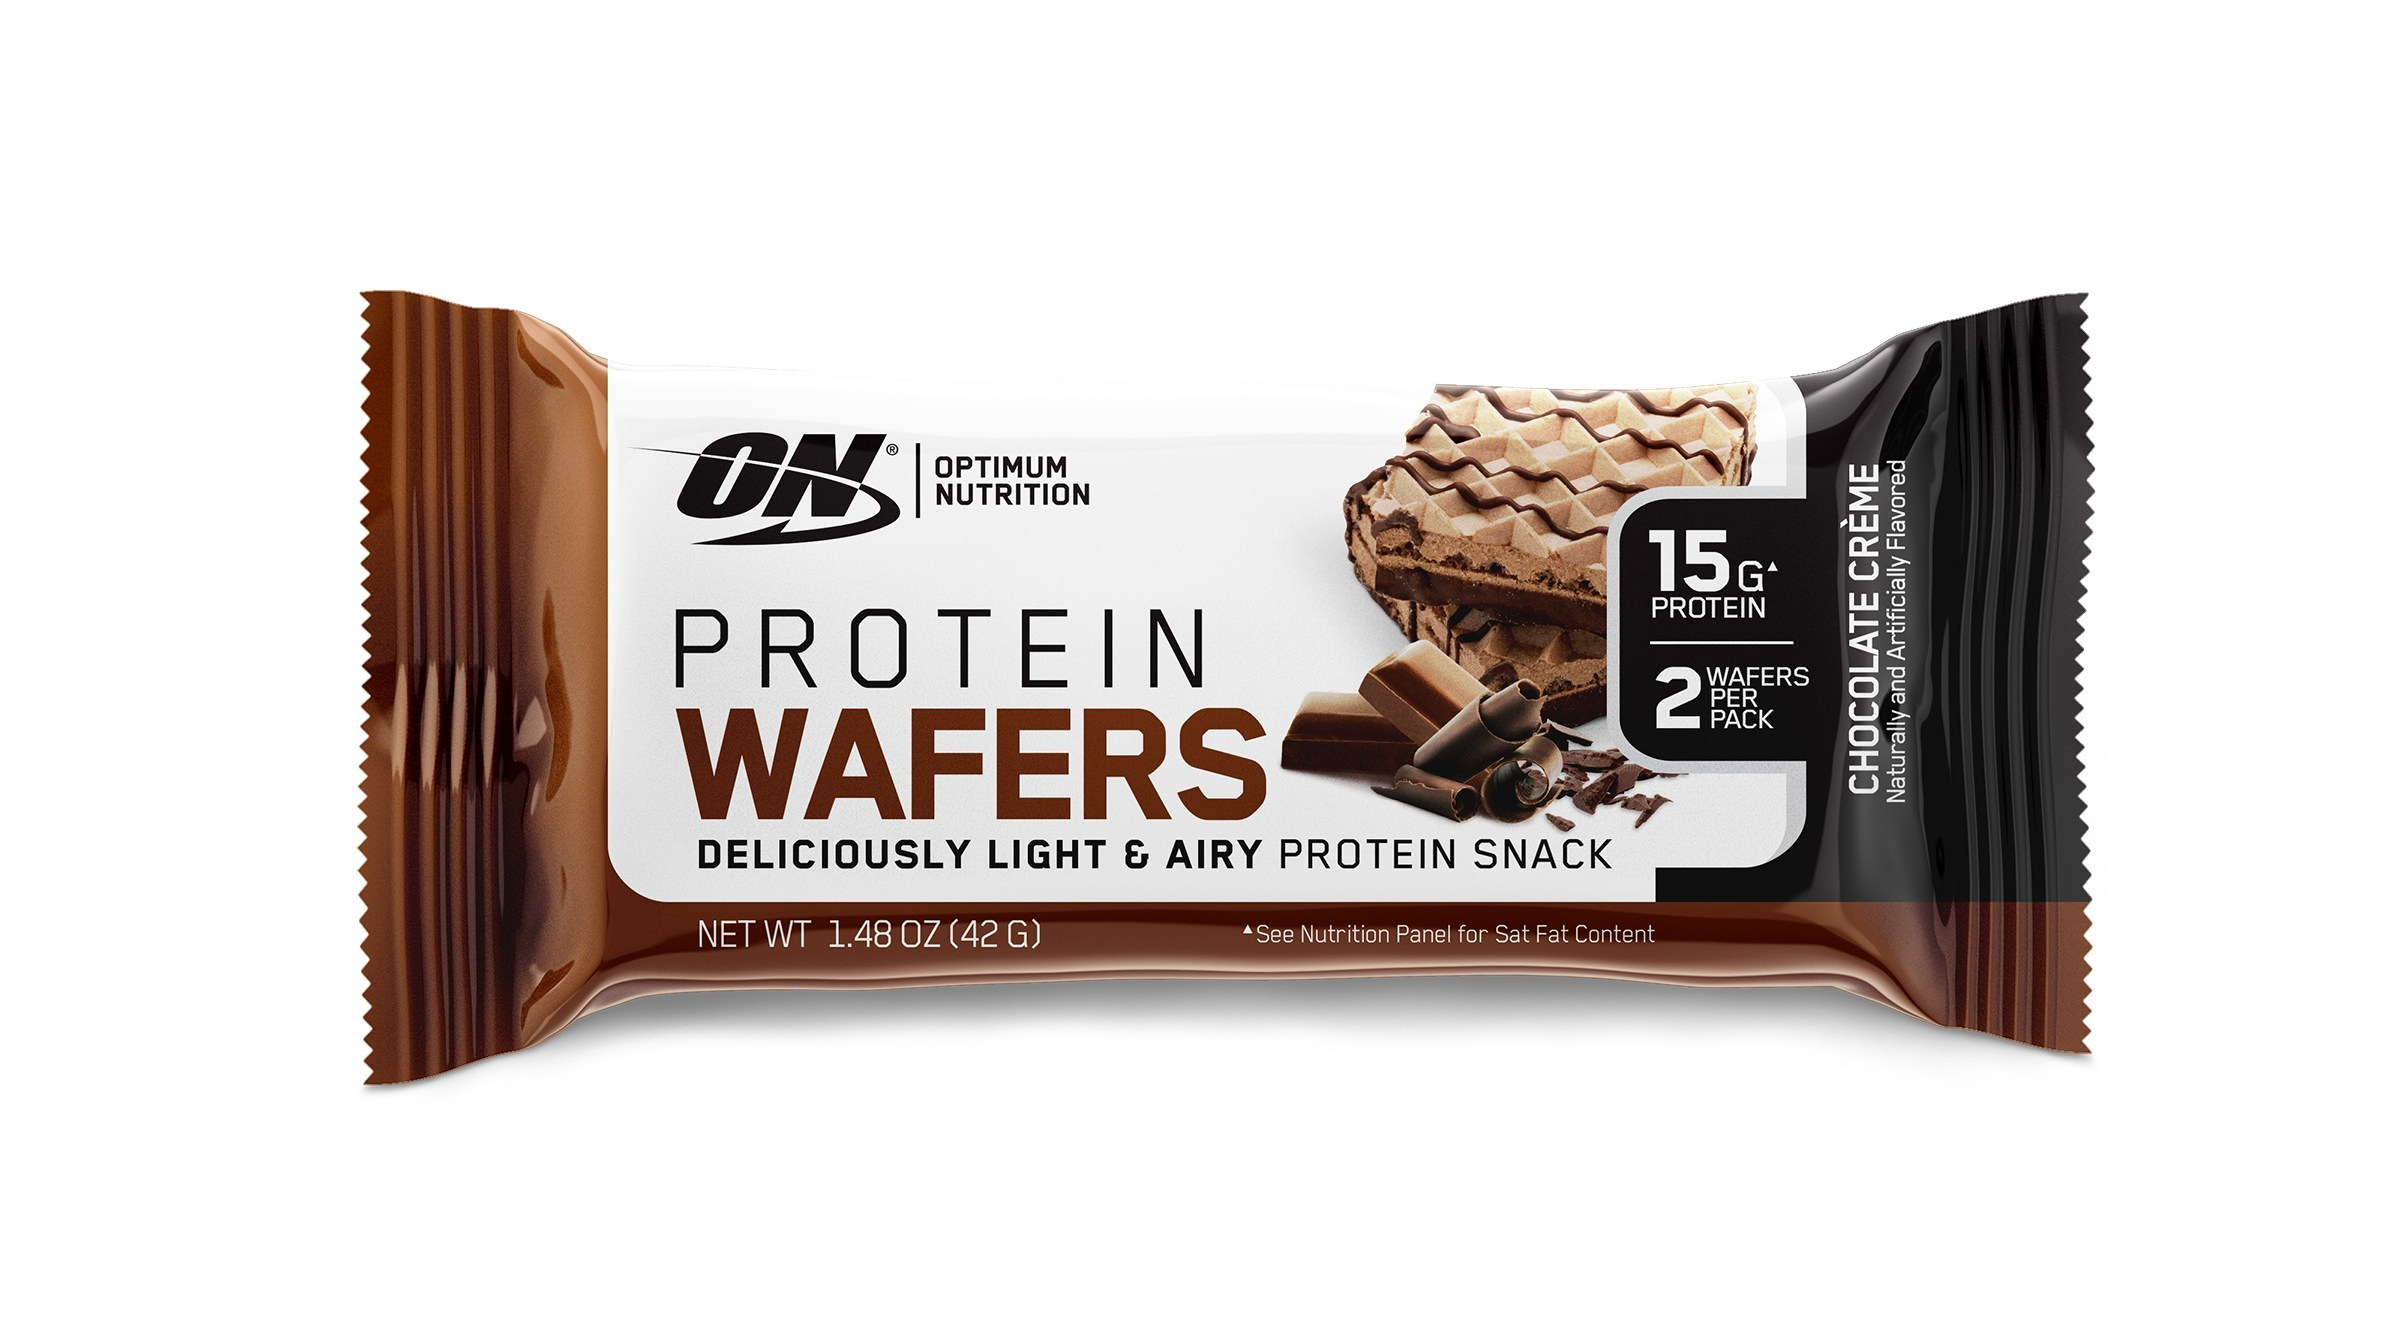 OPTIMUM NUTRITION Introduces Sweet, Crispy Protein Wafers in